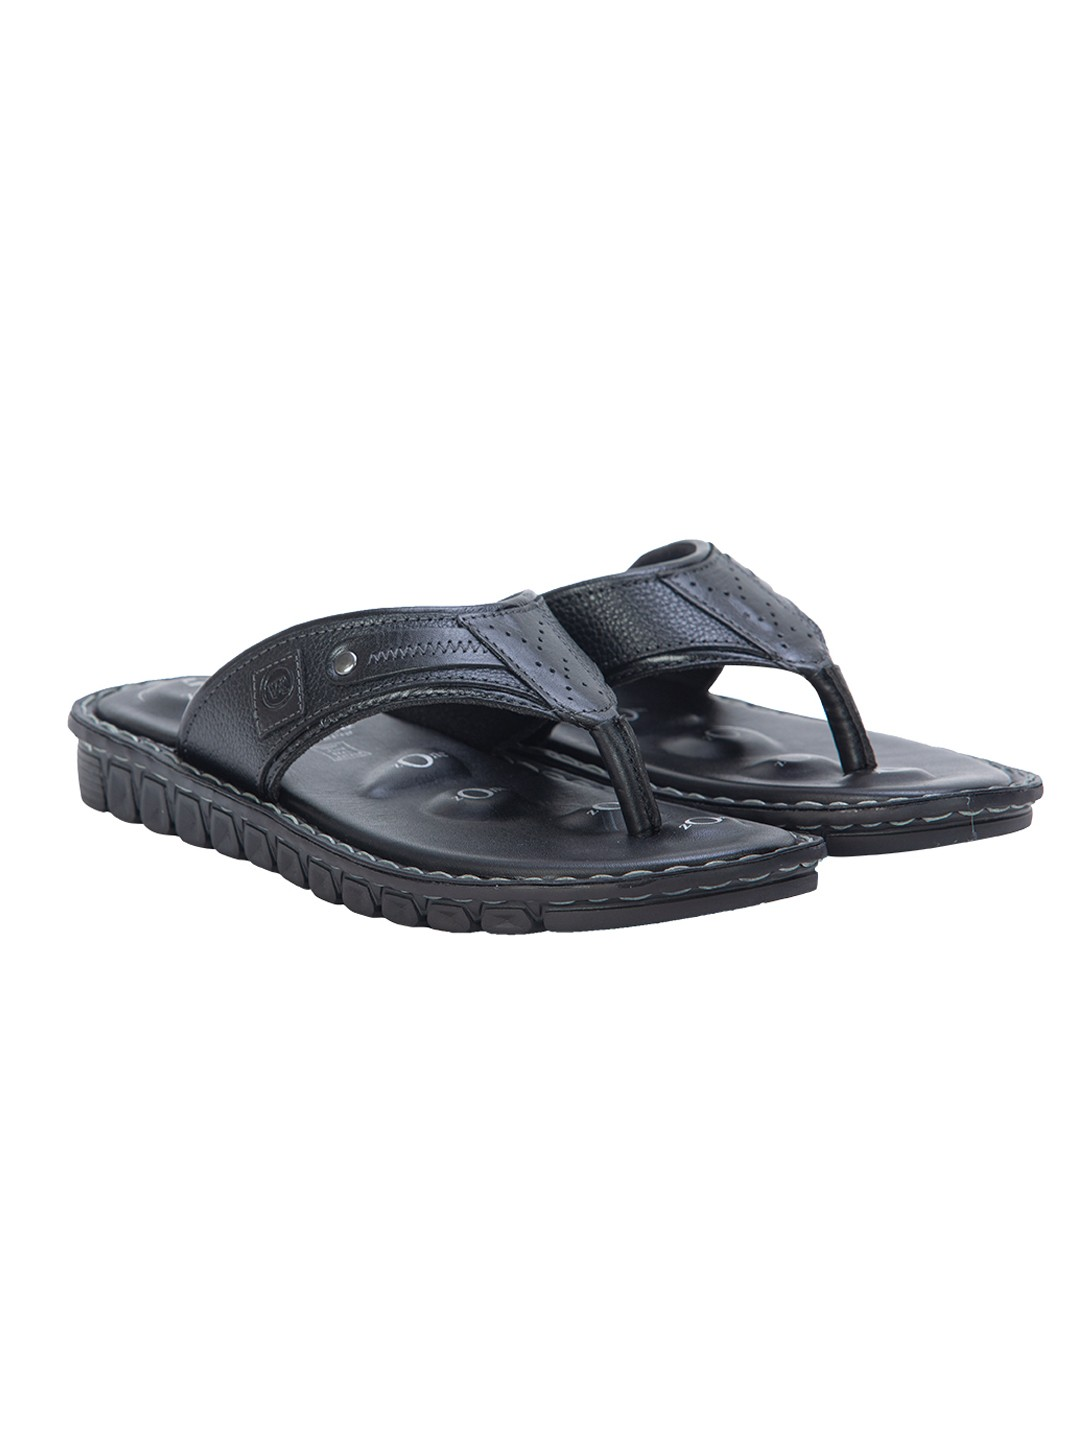 VON WELLX ELMER COMFORT BLACK SLIPPERS